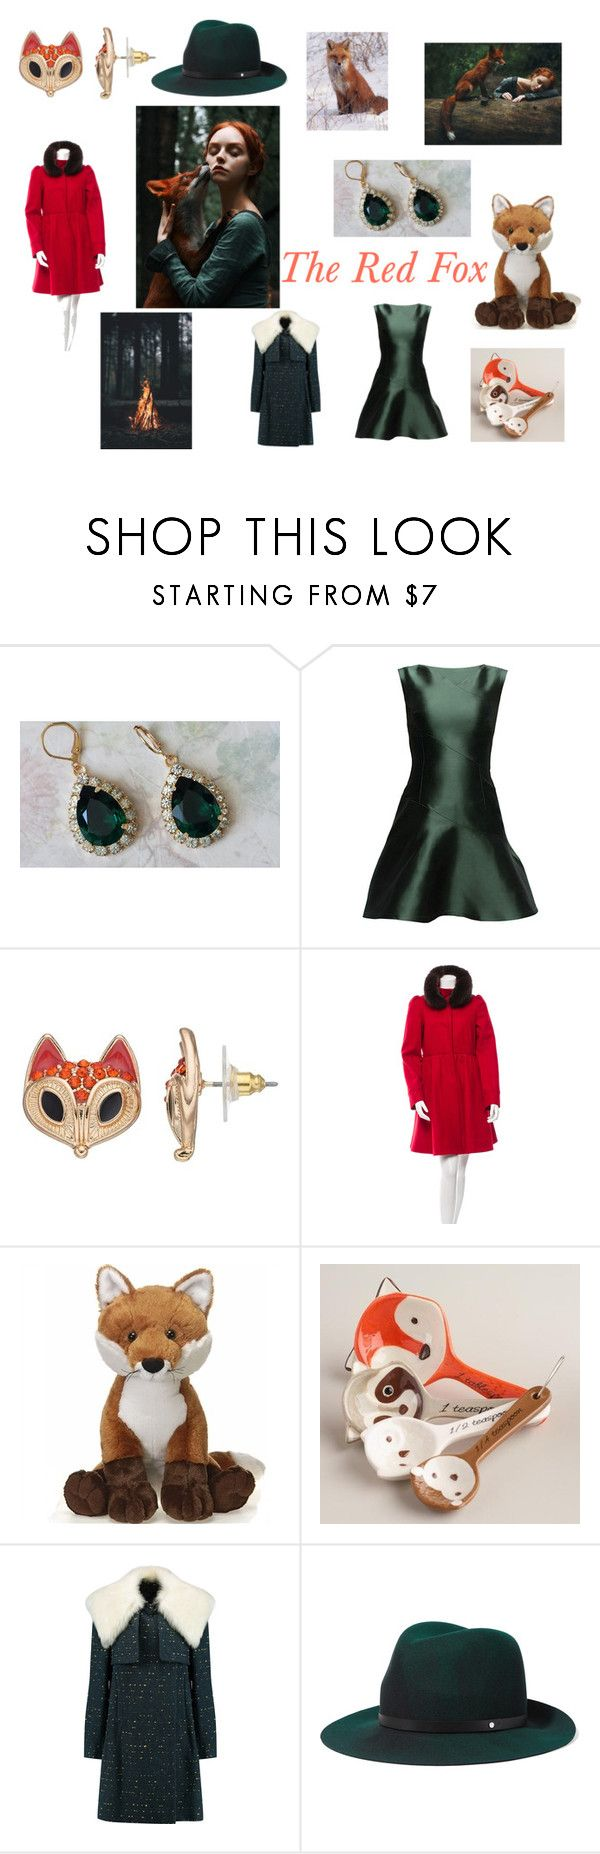 """""""The Red Fox"""" by katherine-hubbard on Polyvore featuring Lattori, Alice + Olivia, Cost Plus World Market, Chloé and rag & bone"""